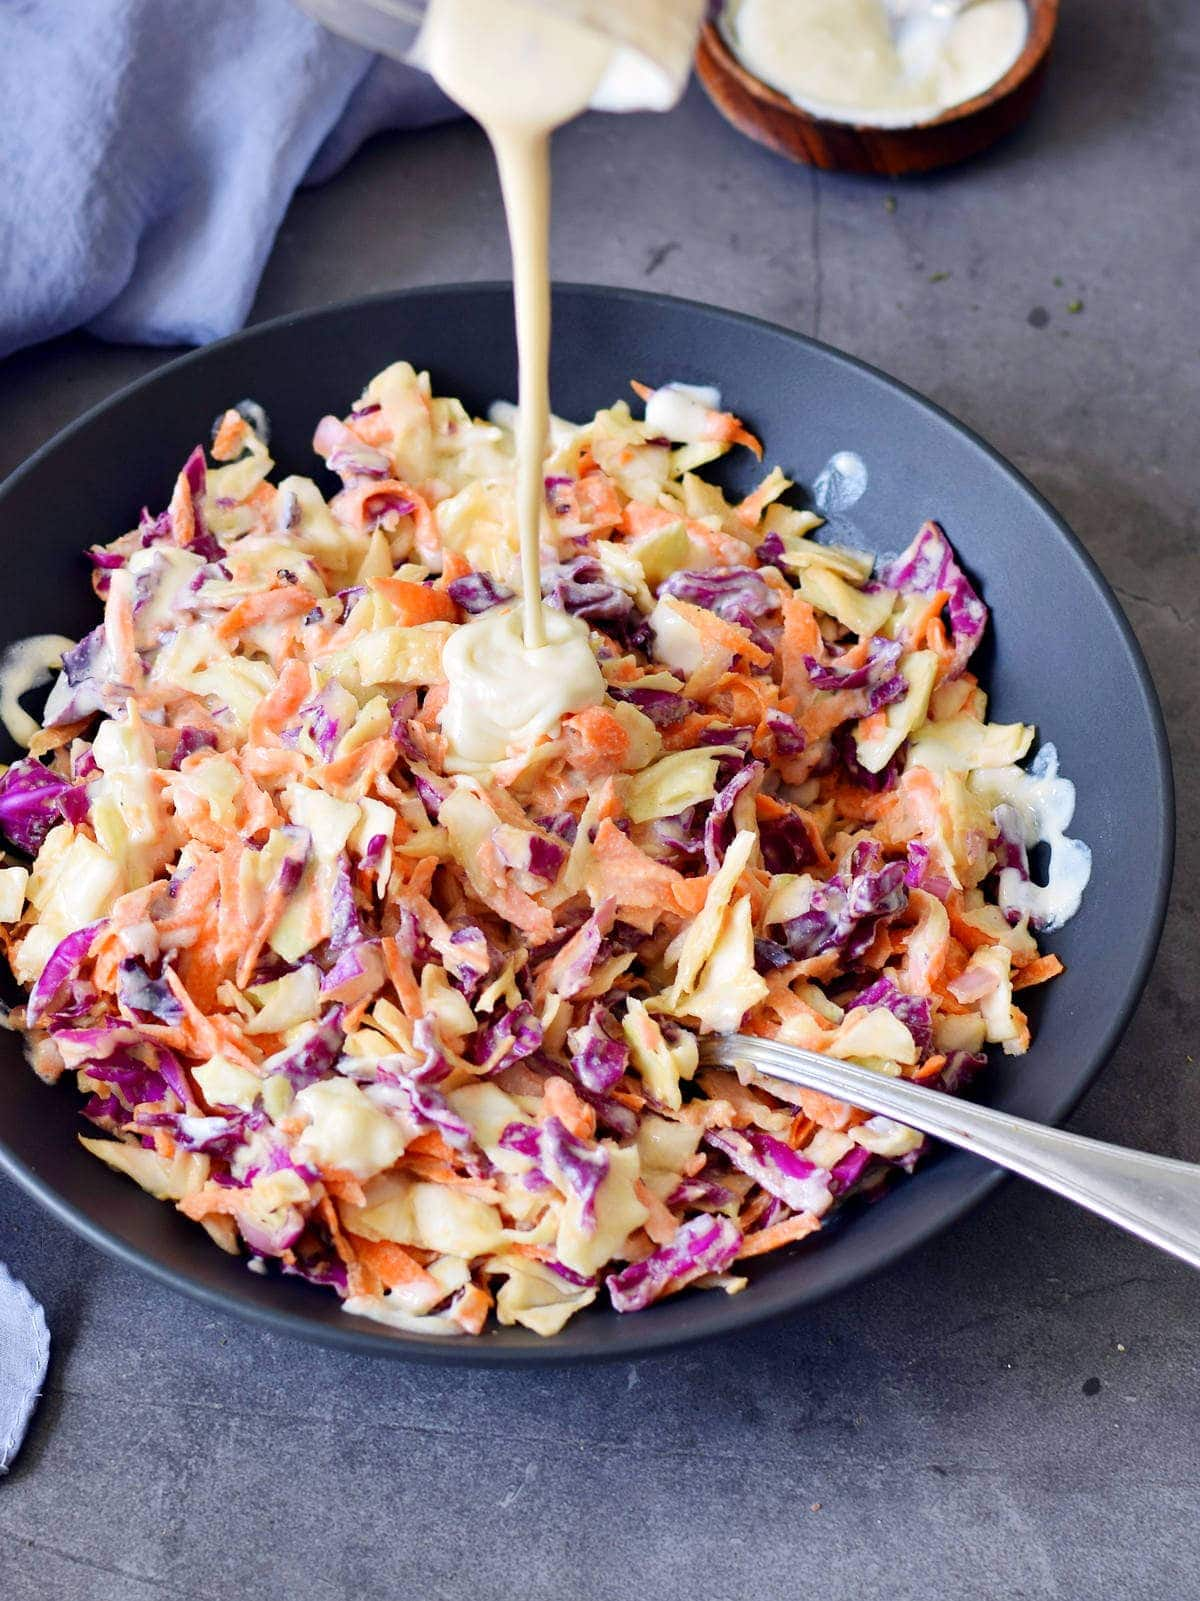 pouring dairy free sour cream over keto coleslaw